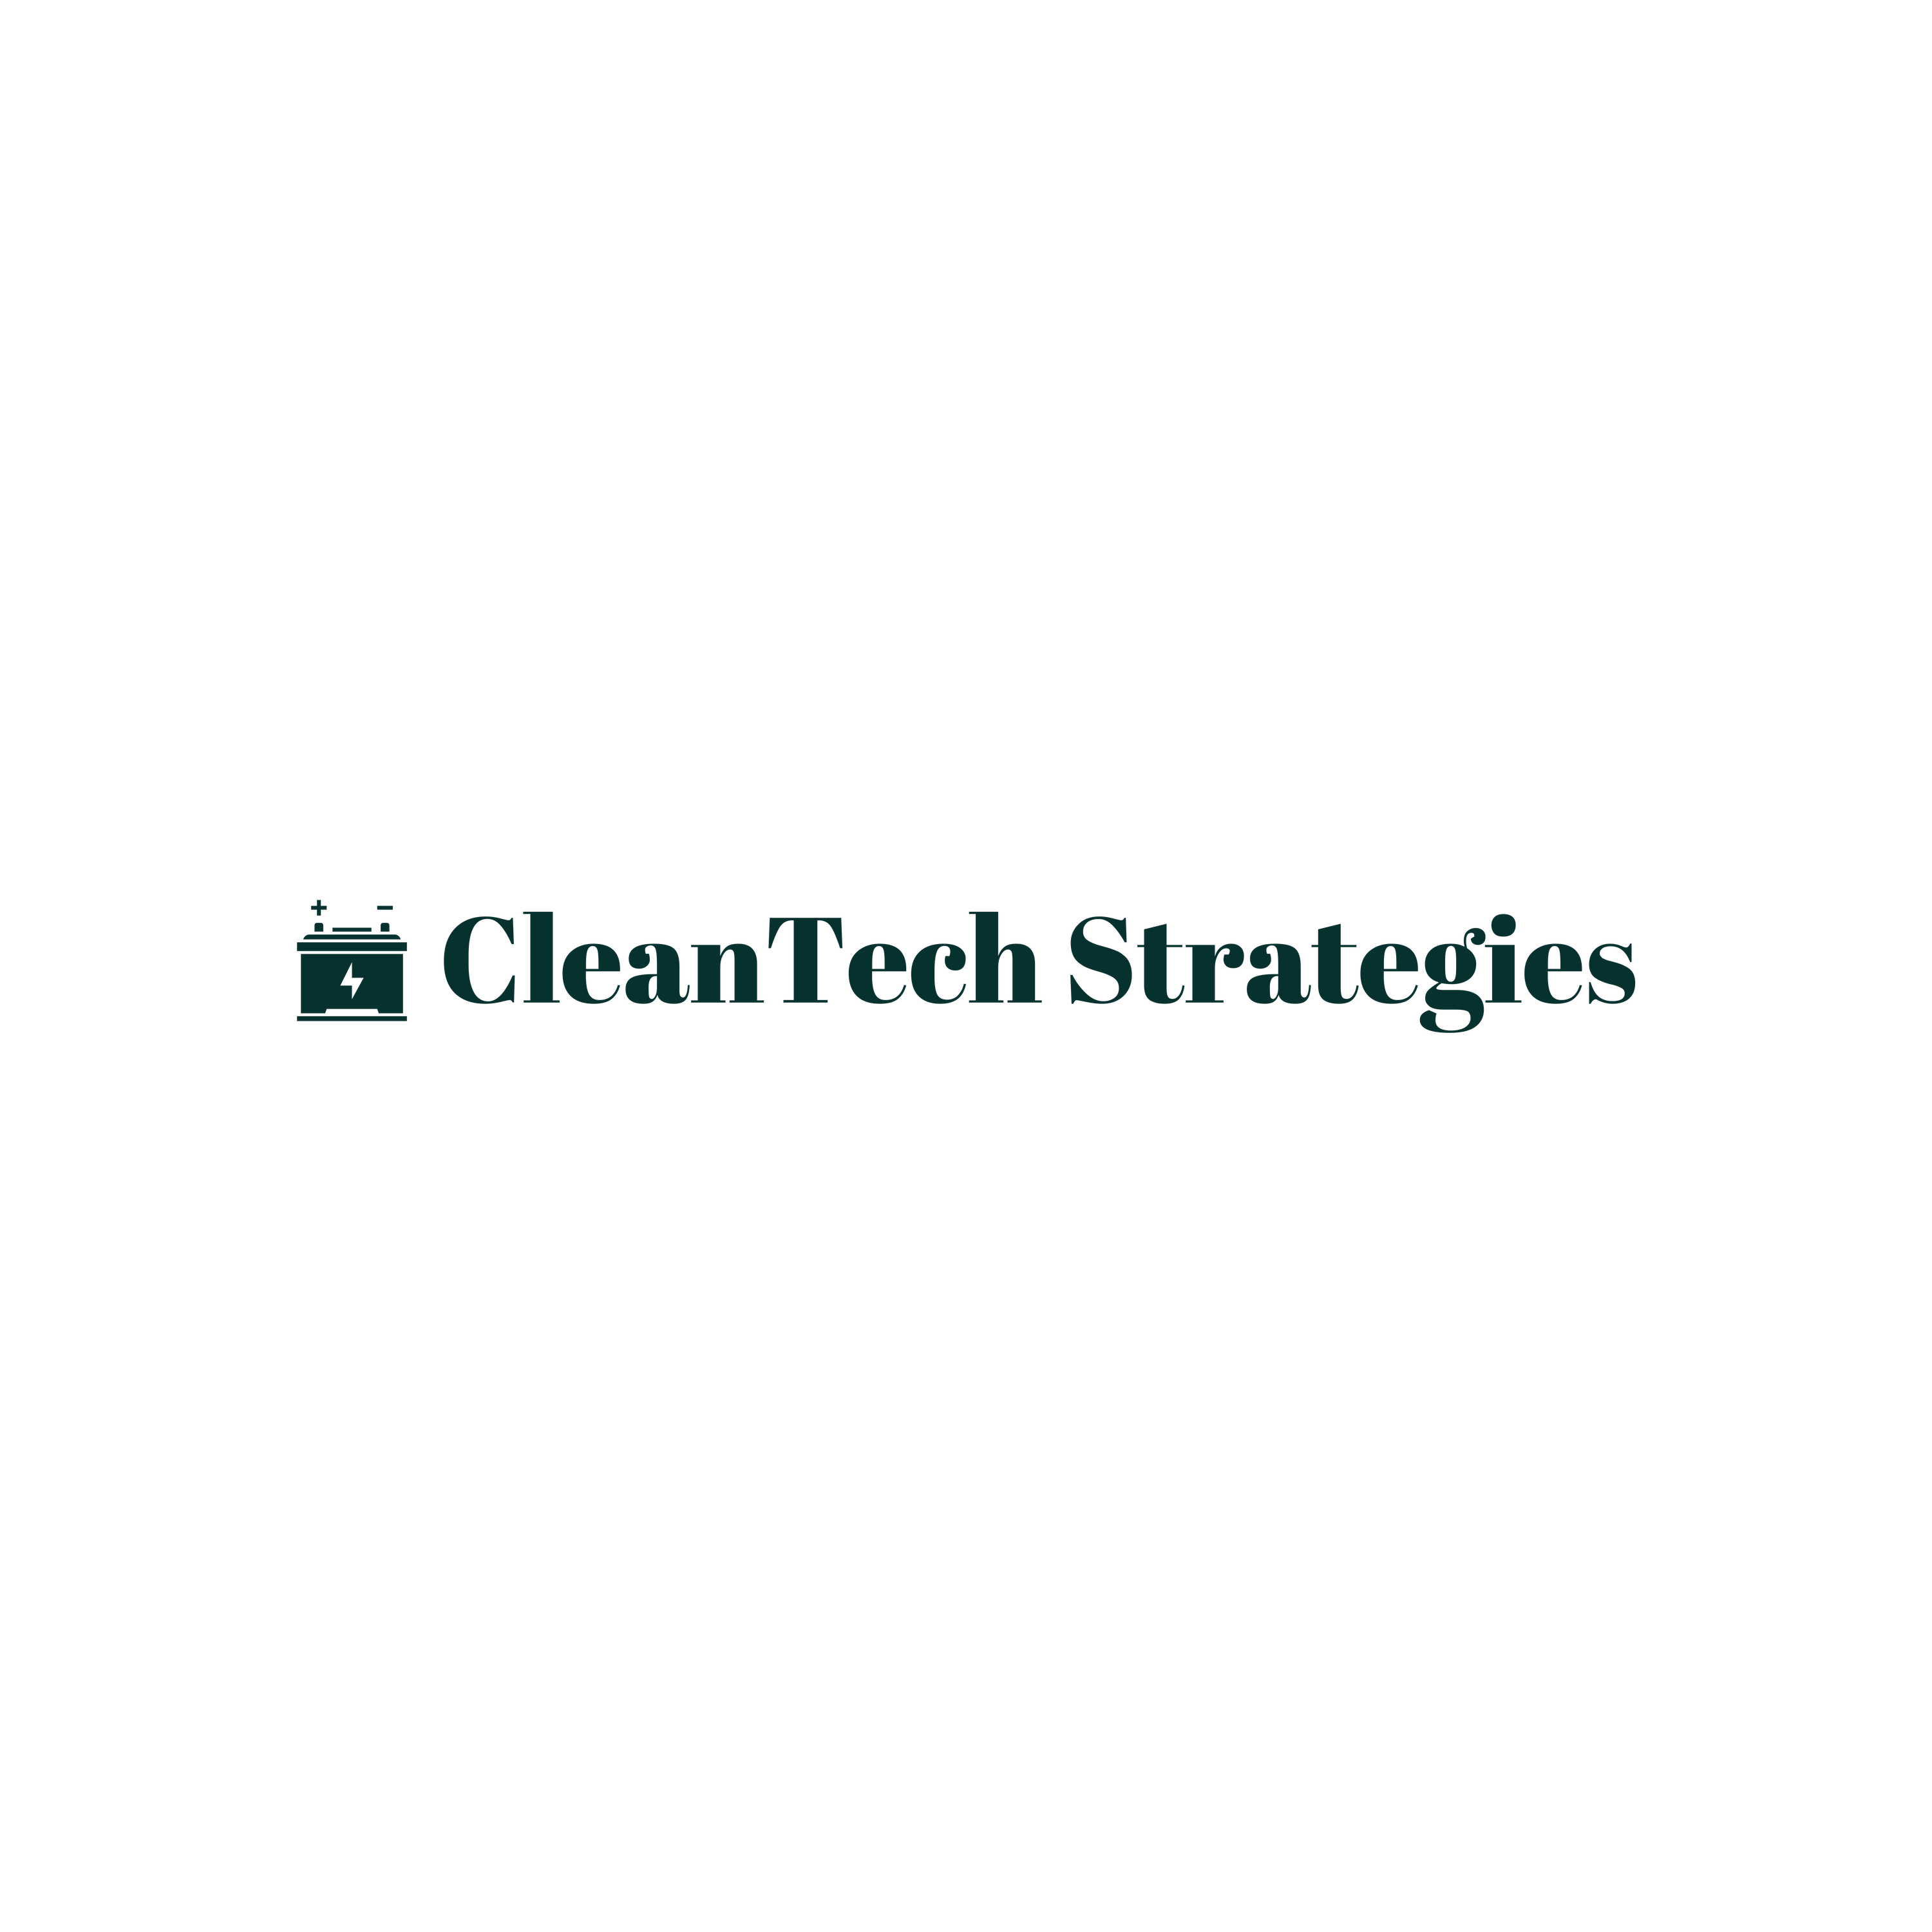 CleanTech Strategies